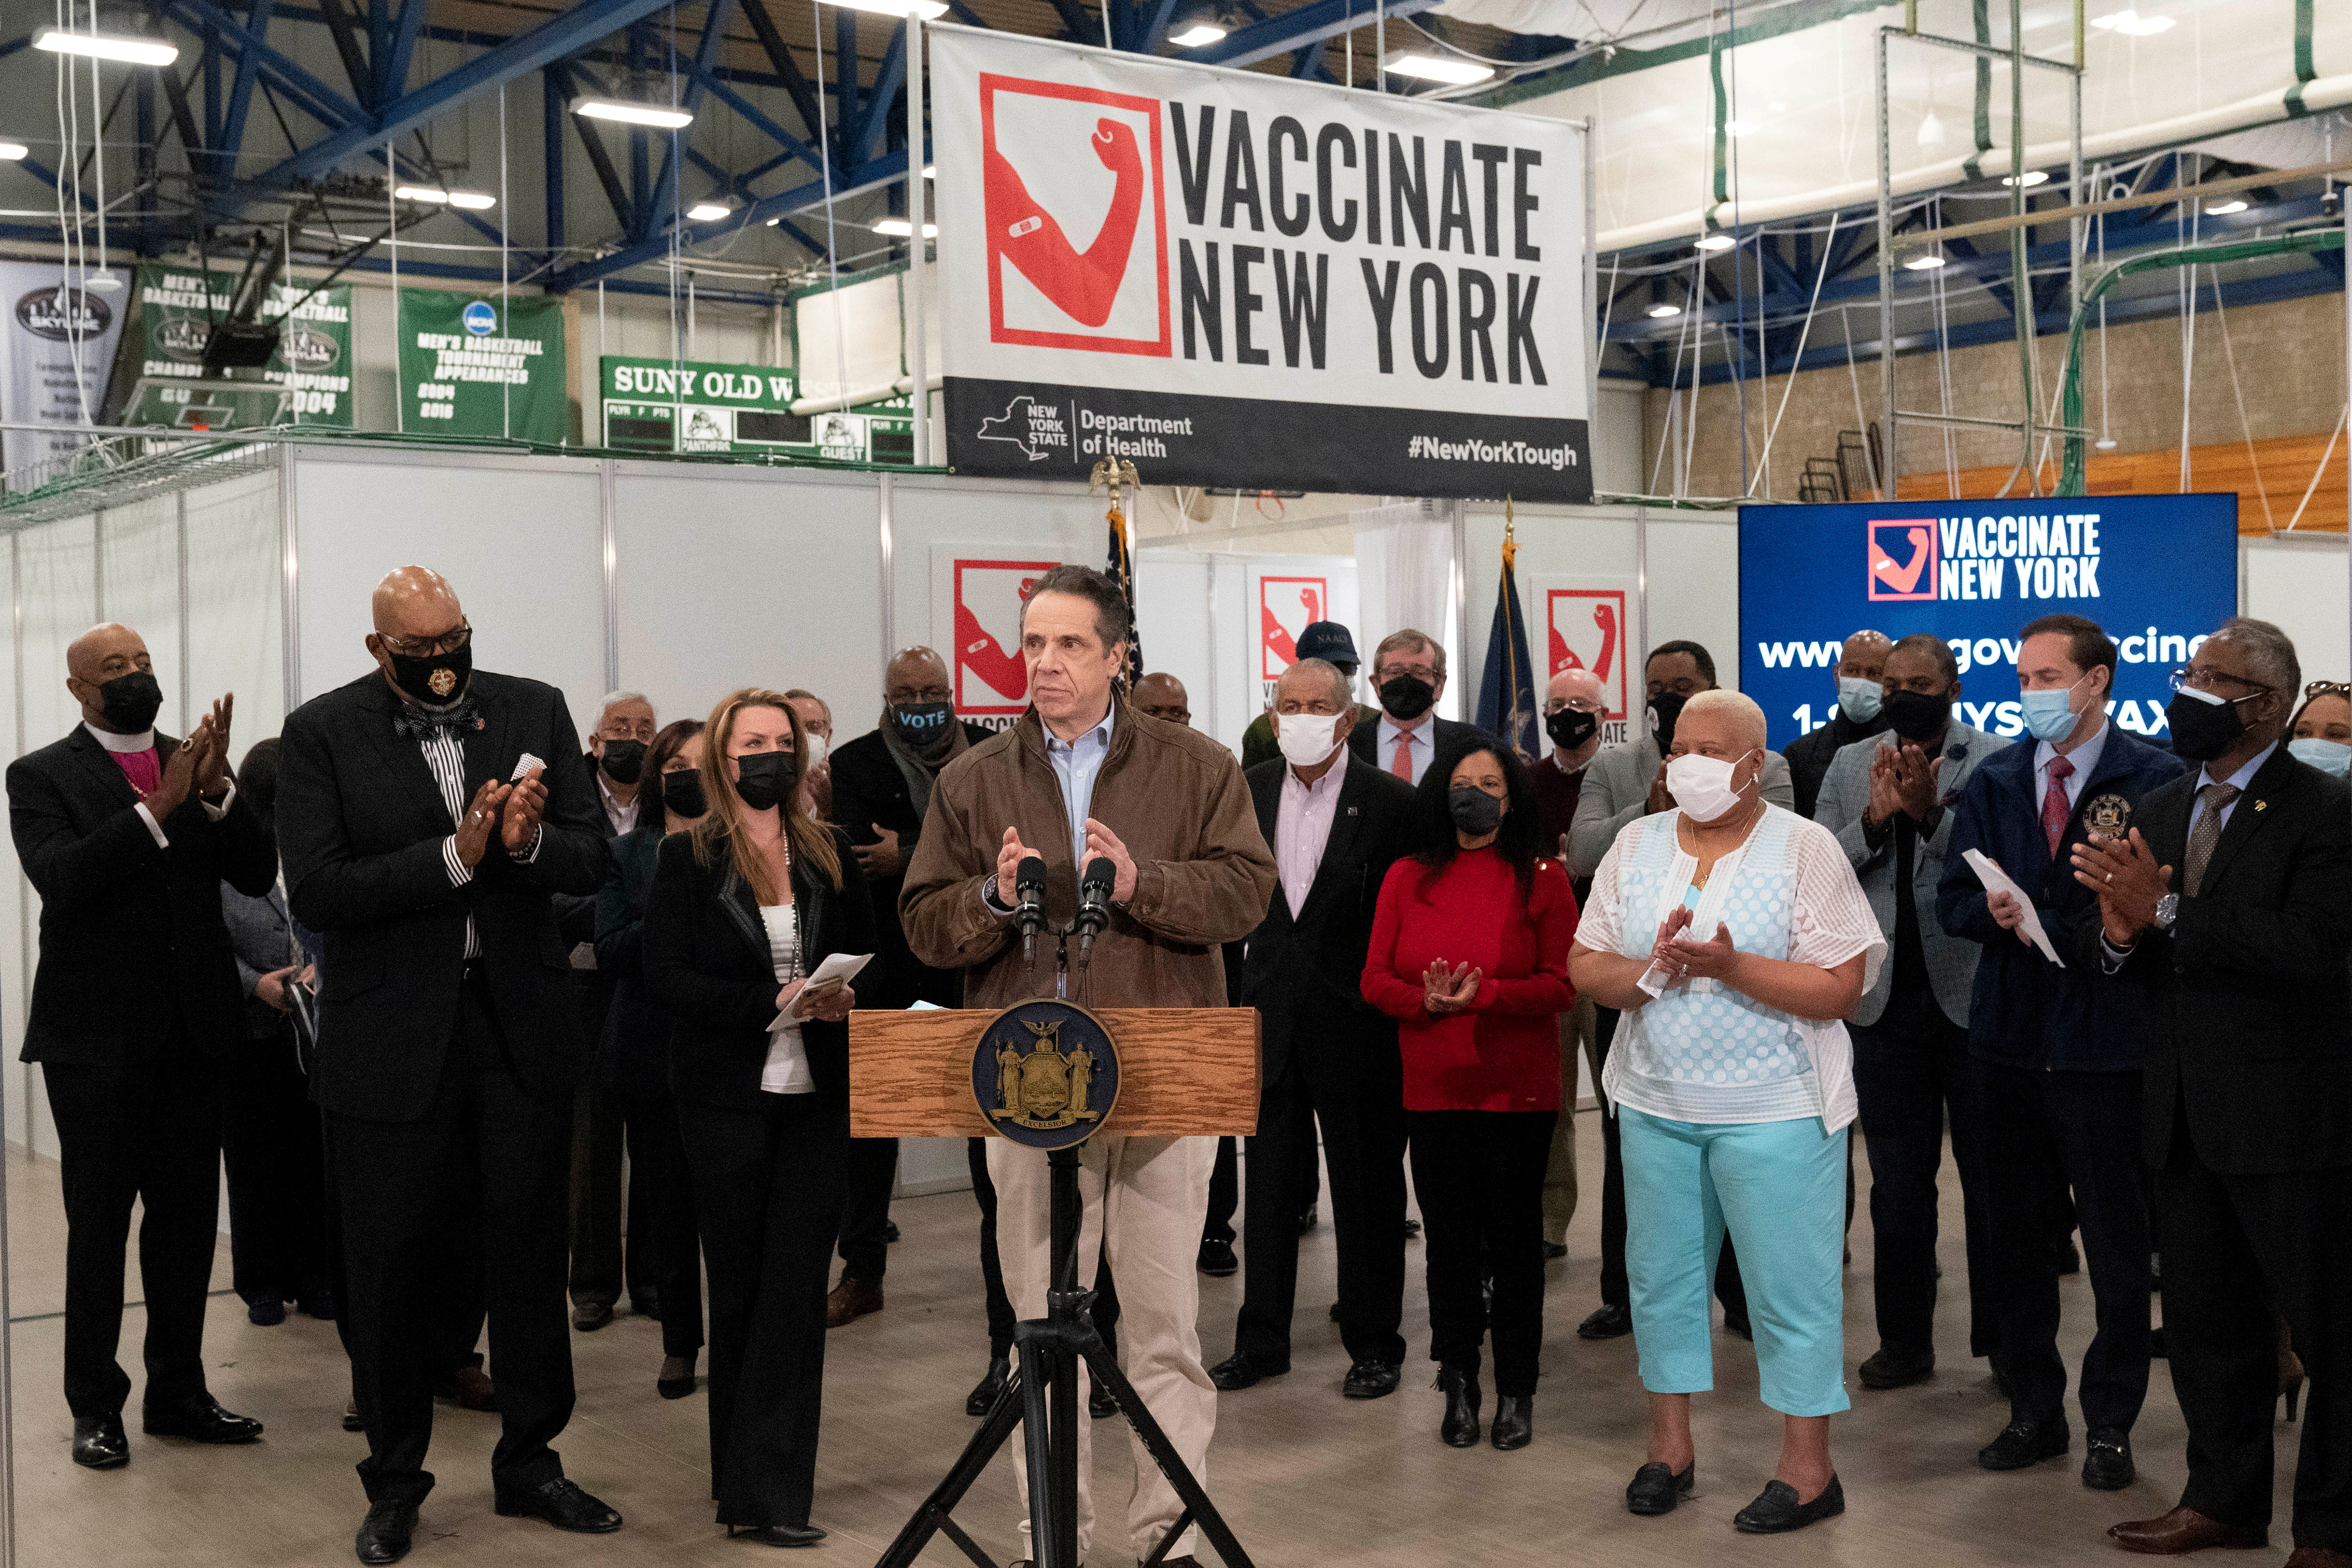 Gov. Andrew Cuomo speaks during a visit to a coronavirus disease (COVID-19) vaccination site, at the State University of New York in Old Westbury, New York, U.S,  March 15, 2021. Mark Lennihan/Pool via REUTERS/File Photo